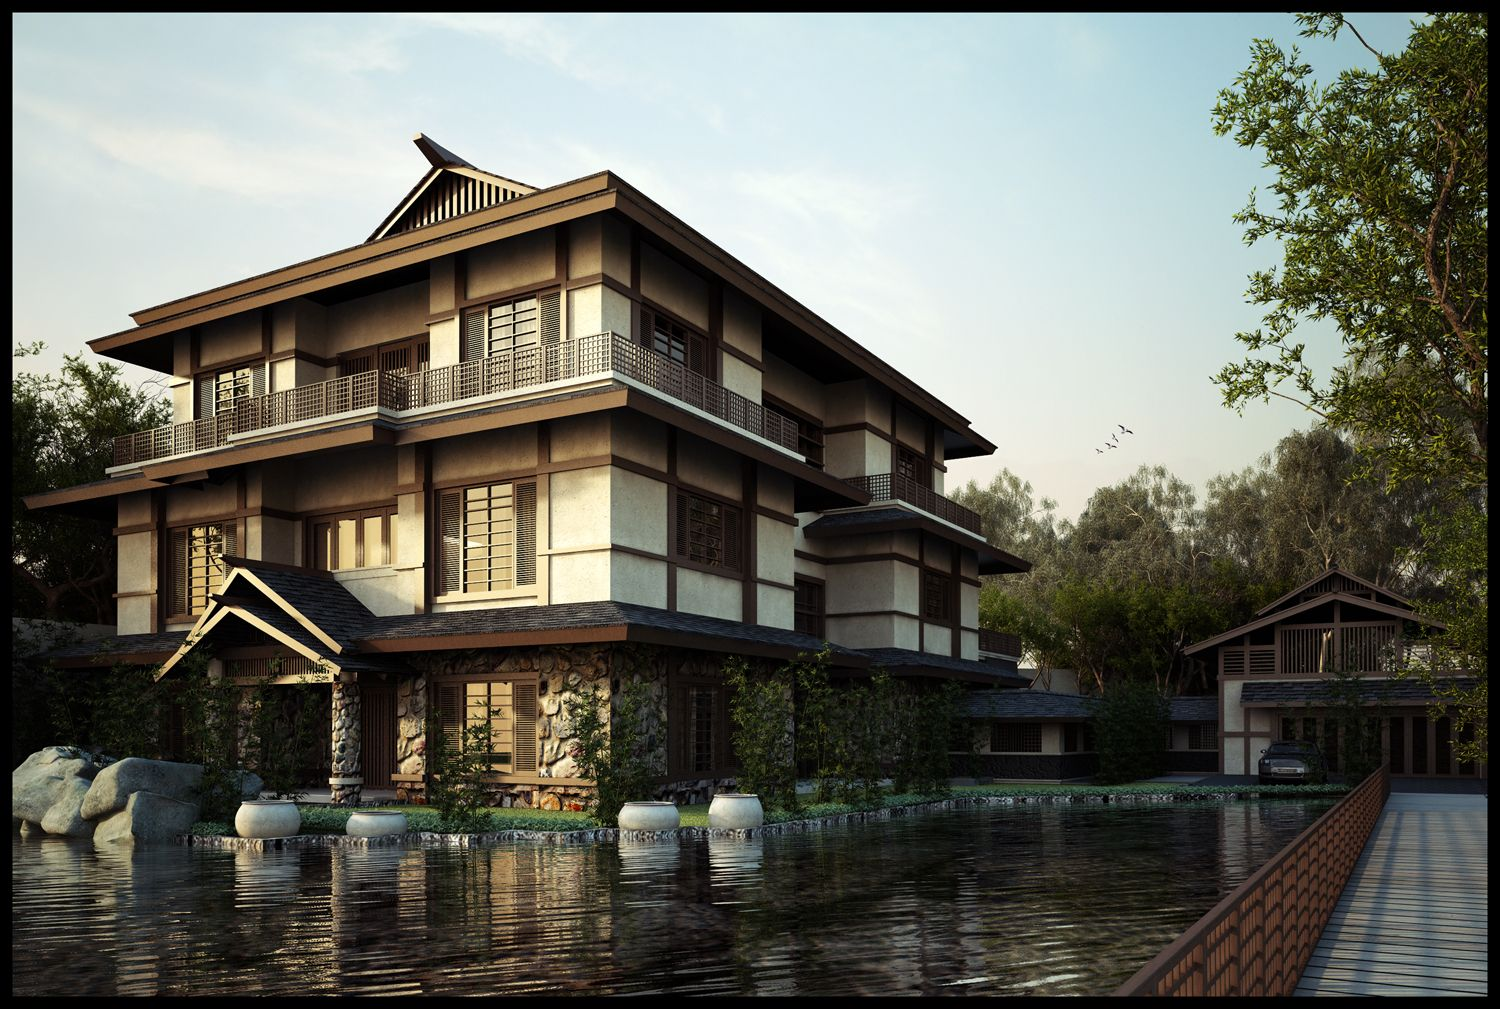 Asian style architecture designing a japanese style house home garden healthy design